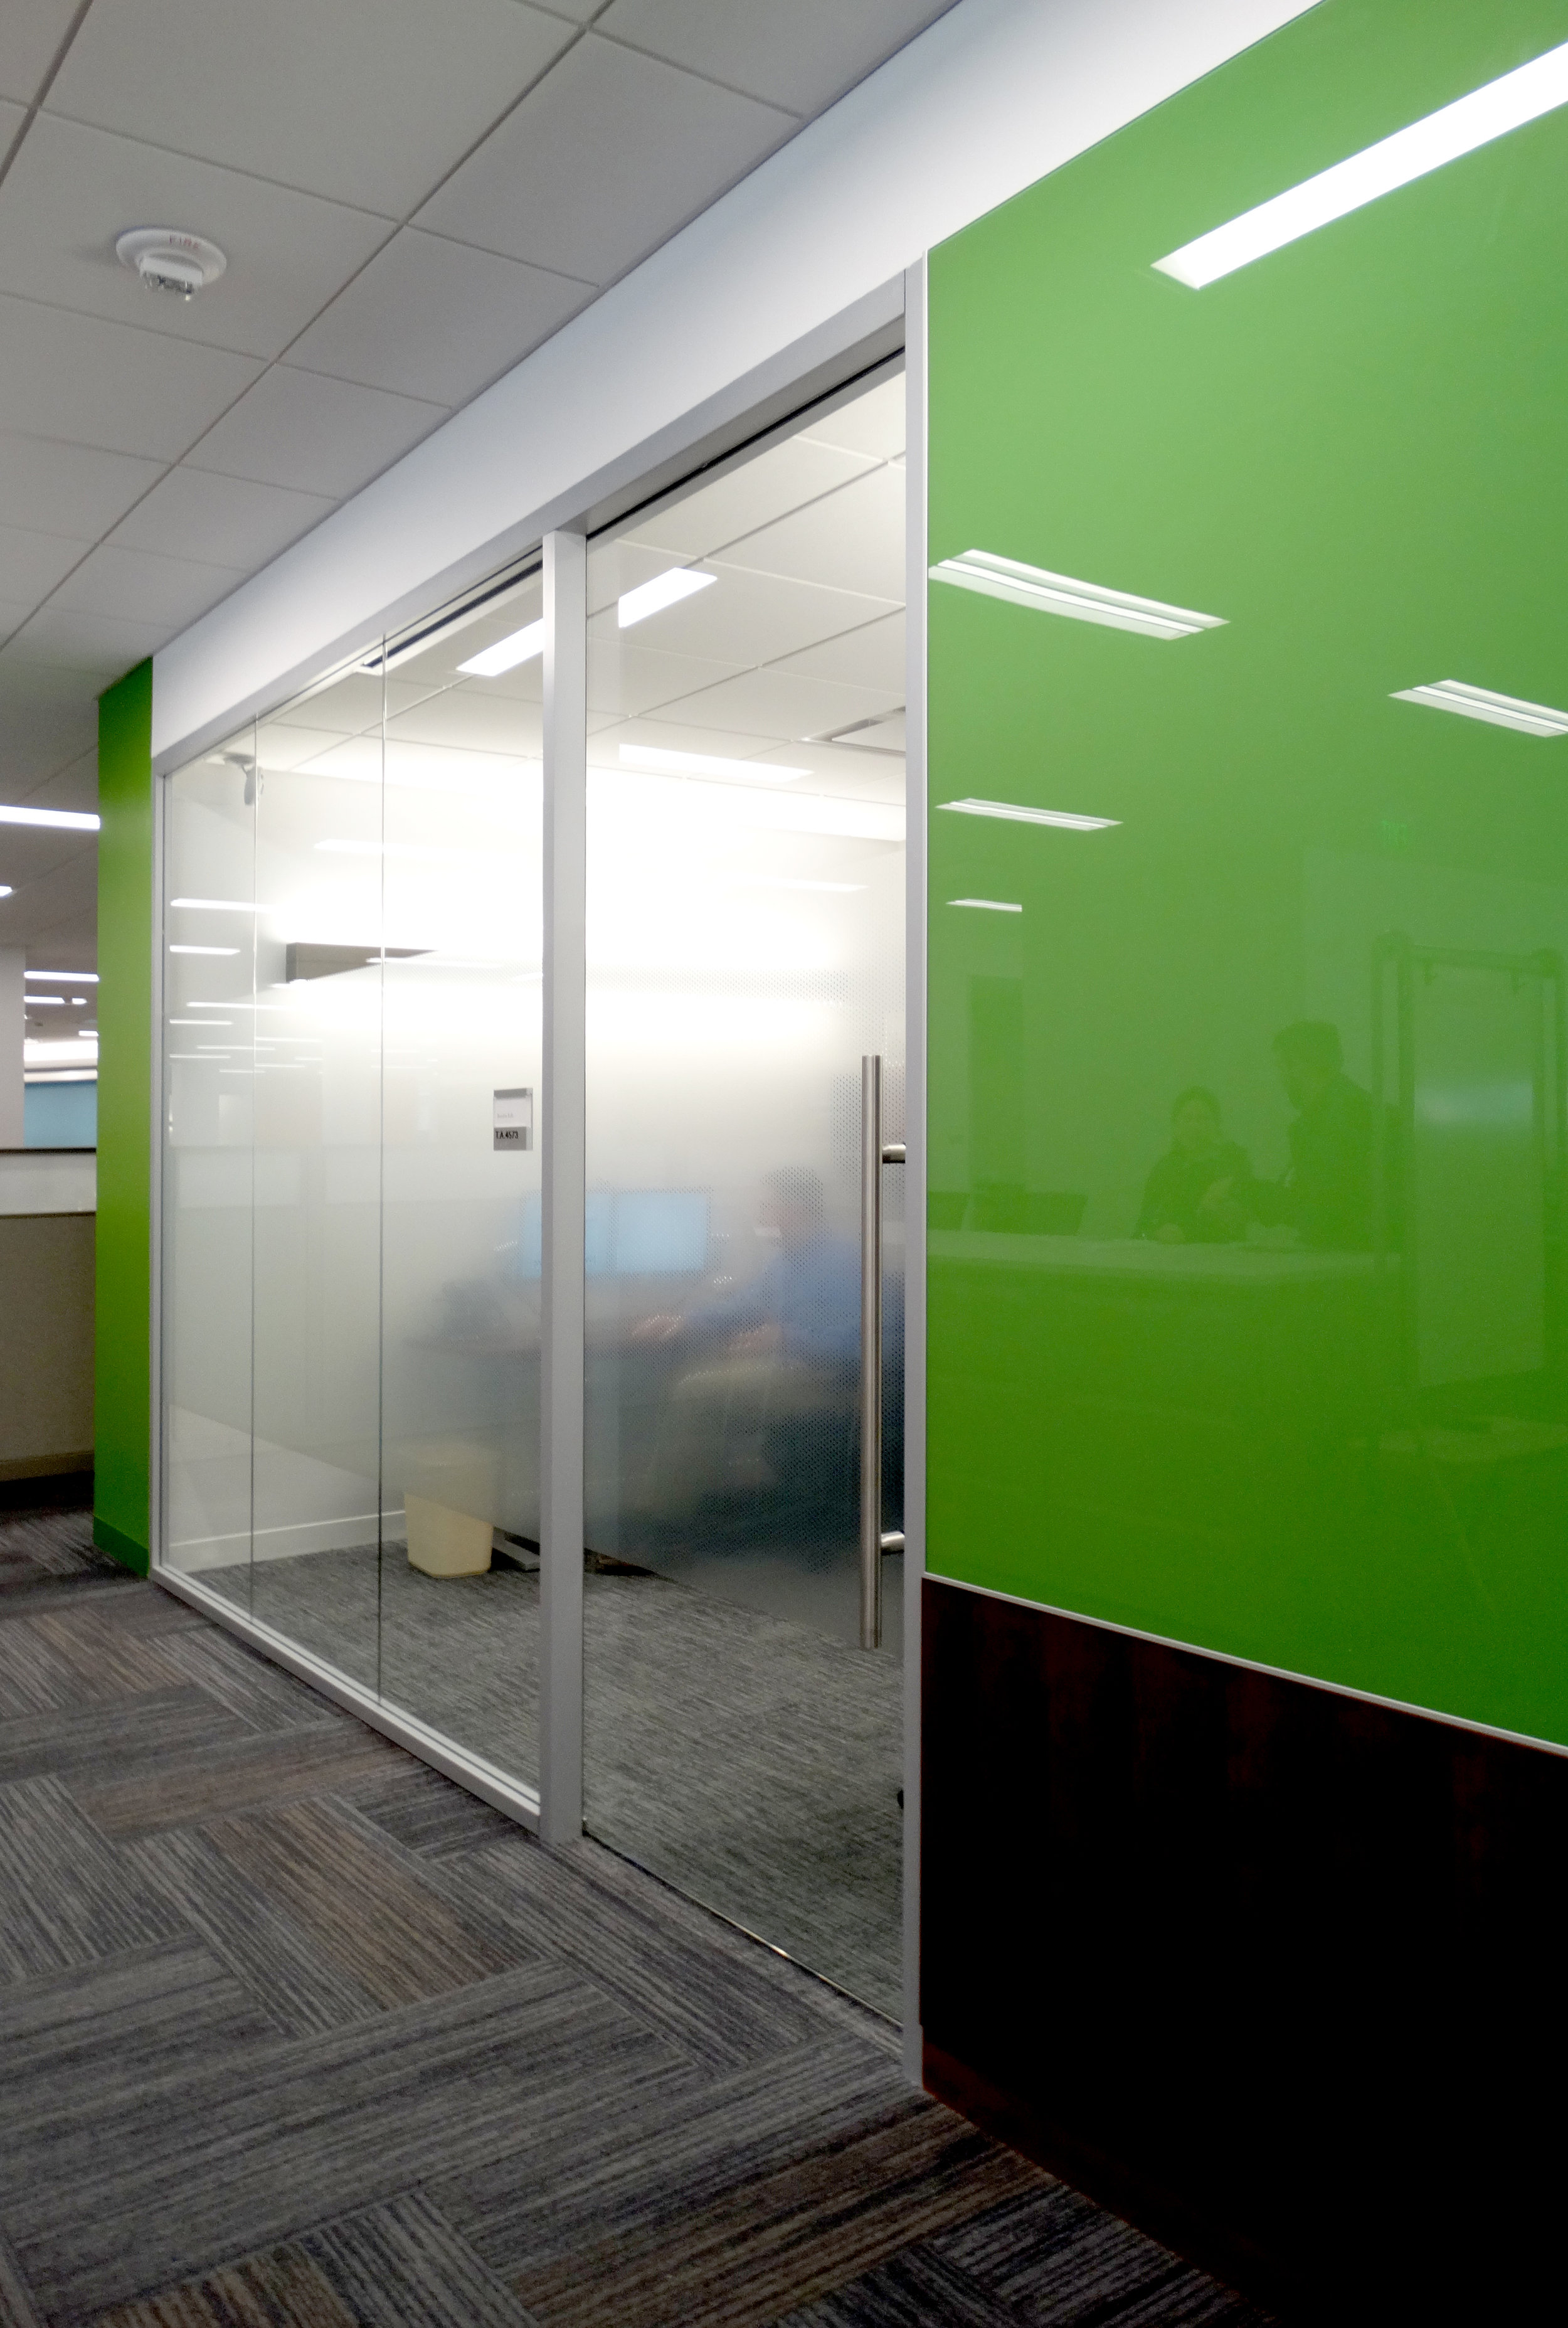 Green Glass Millwork Marker Board Office Wall - Spaceworks AI.jpg